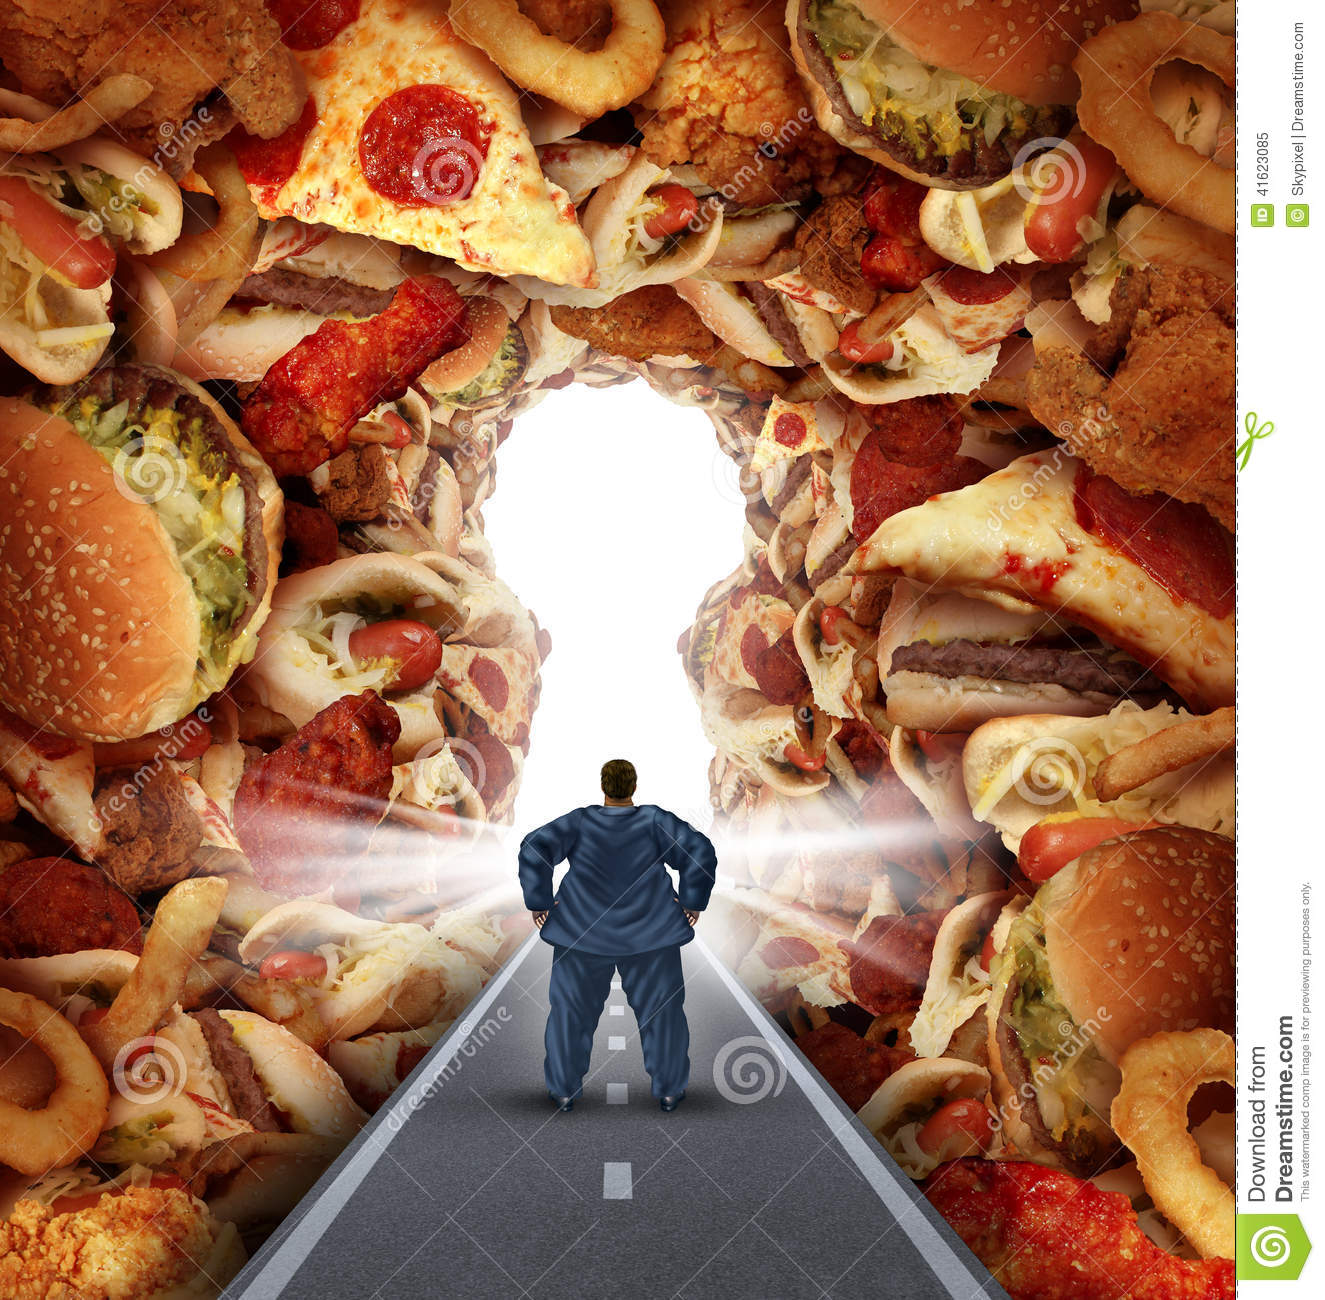 Dieting Solutions Stock Illustration - Image: 41623085